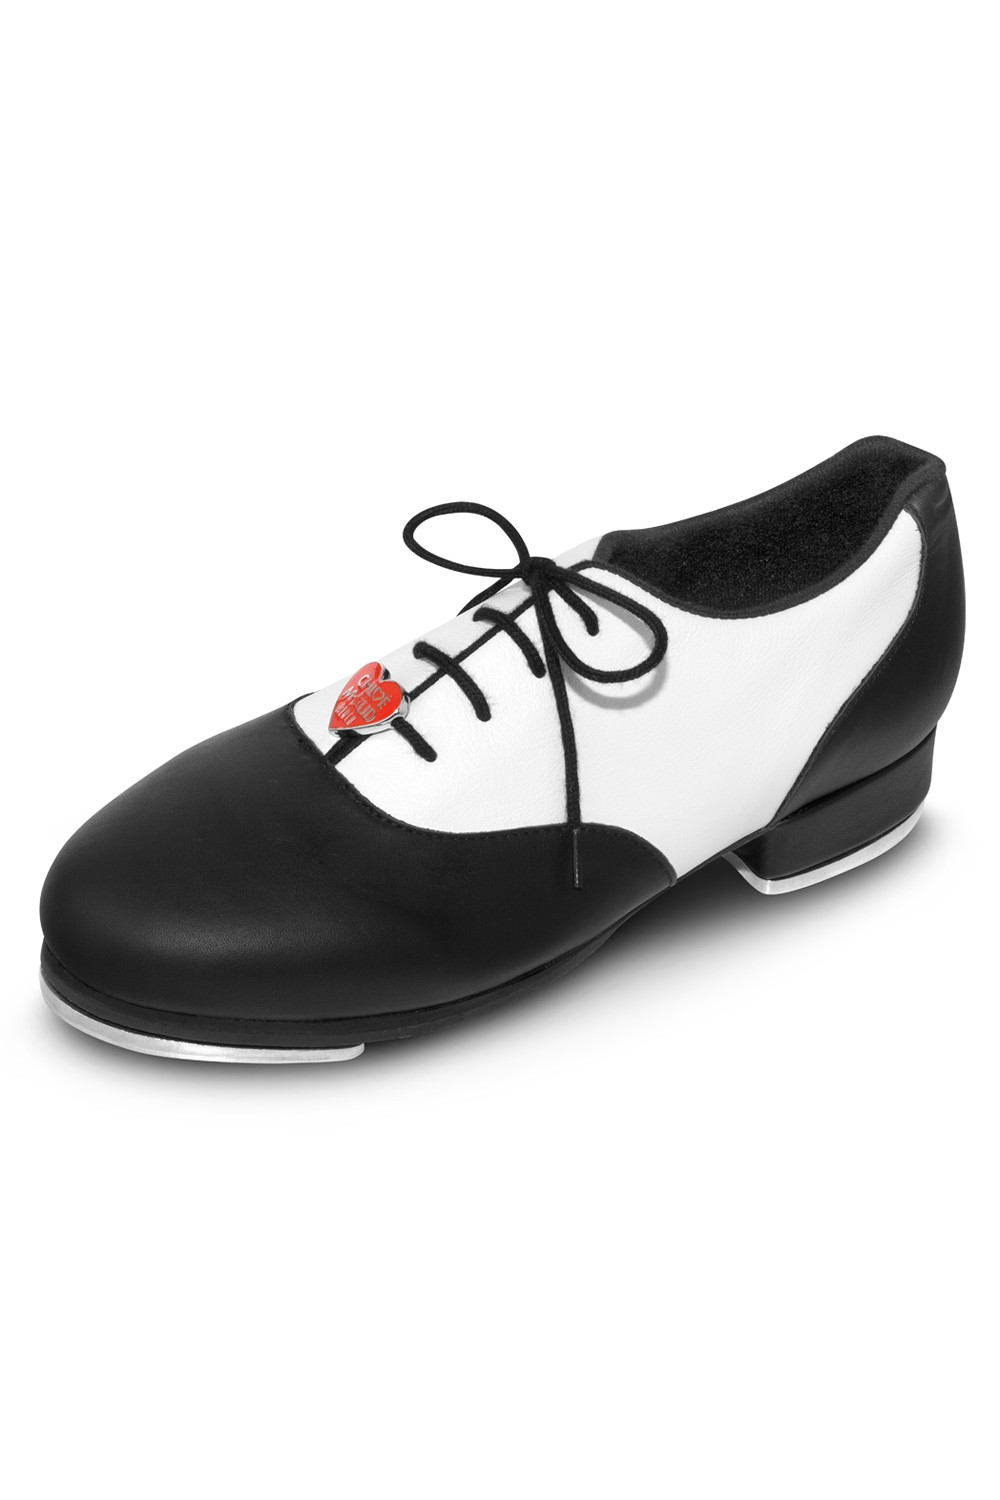 Professional Quality BLOCH® Tap Shoes